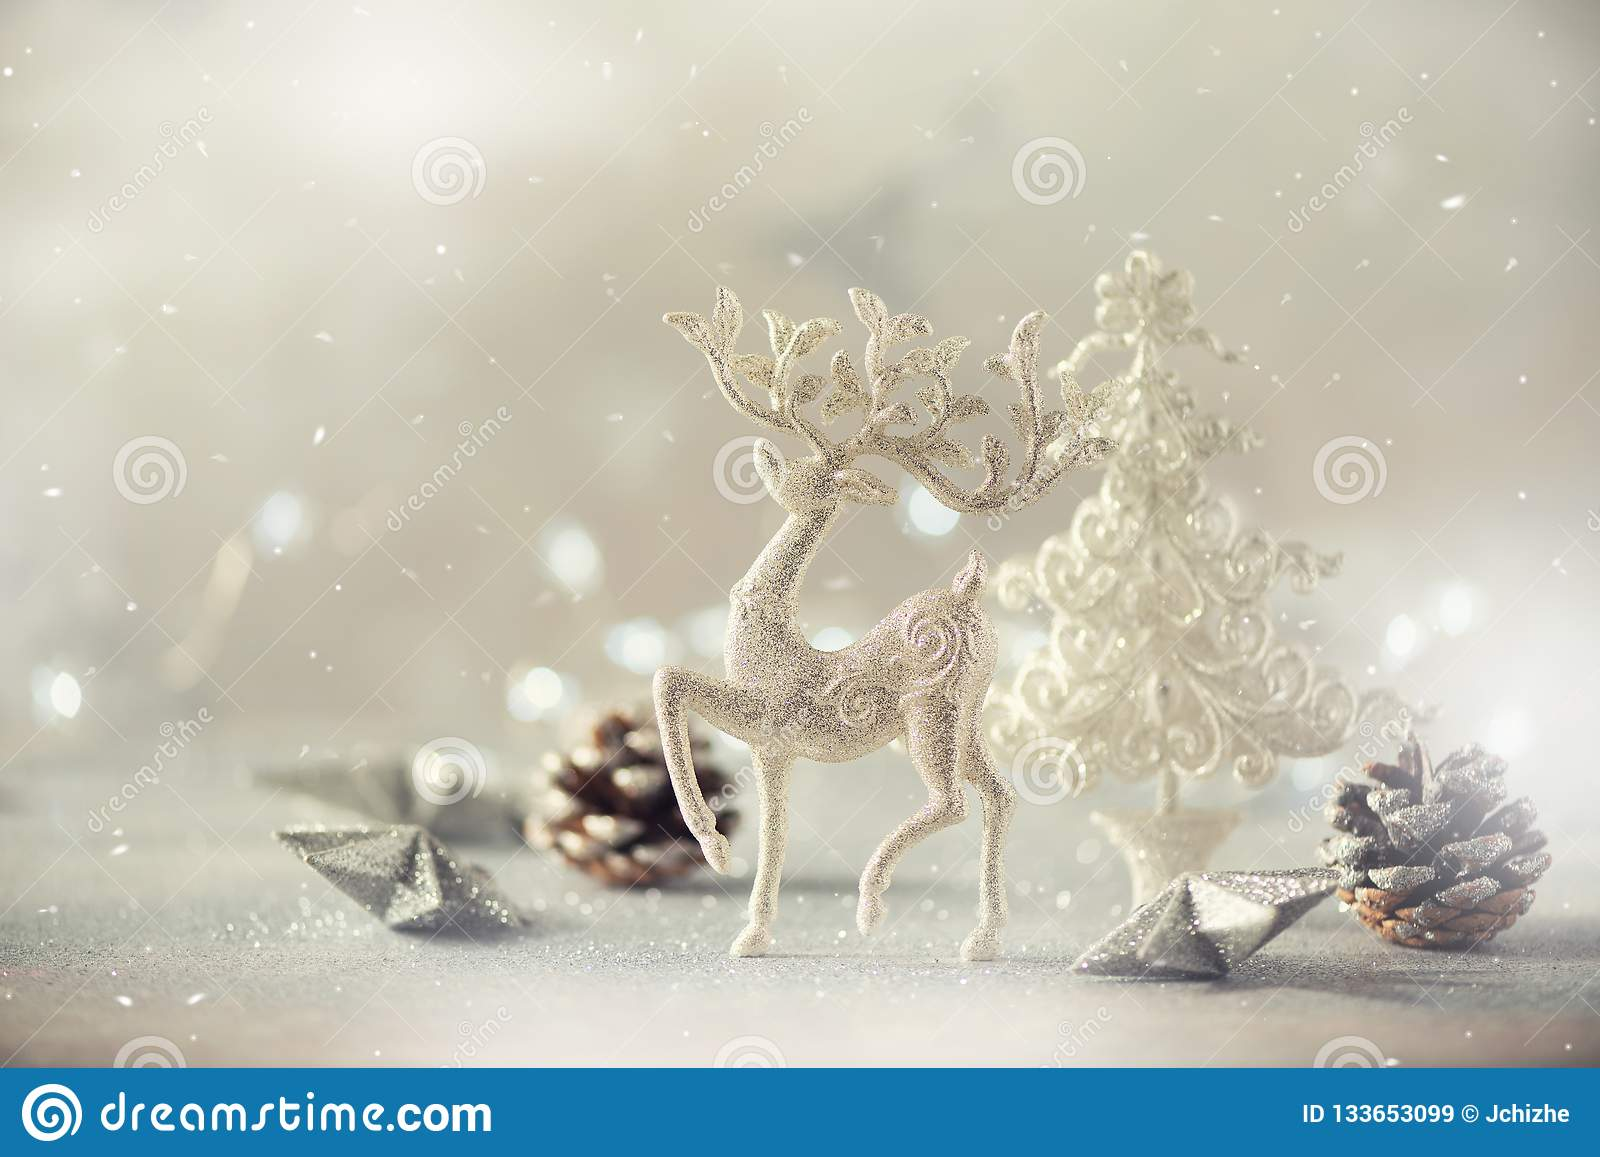 Silver glitter Christmas tree, deer, cones on grey background with lights bokeh, copy space. Greeting card for new year party.